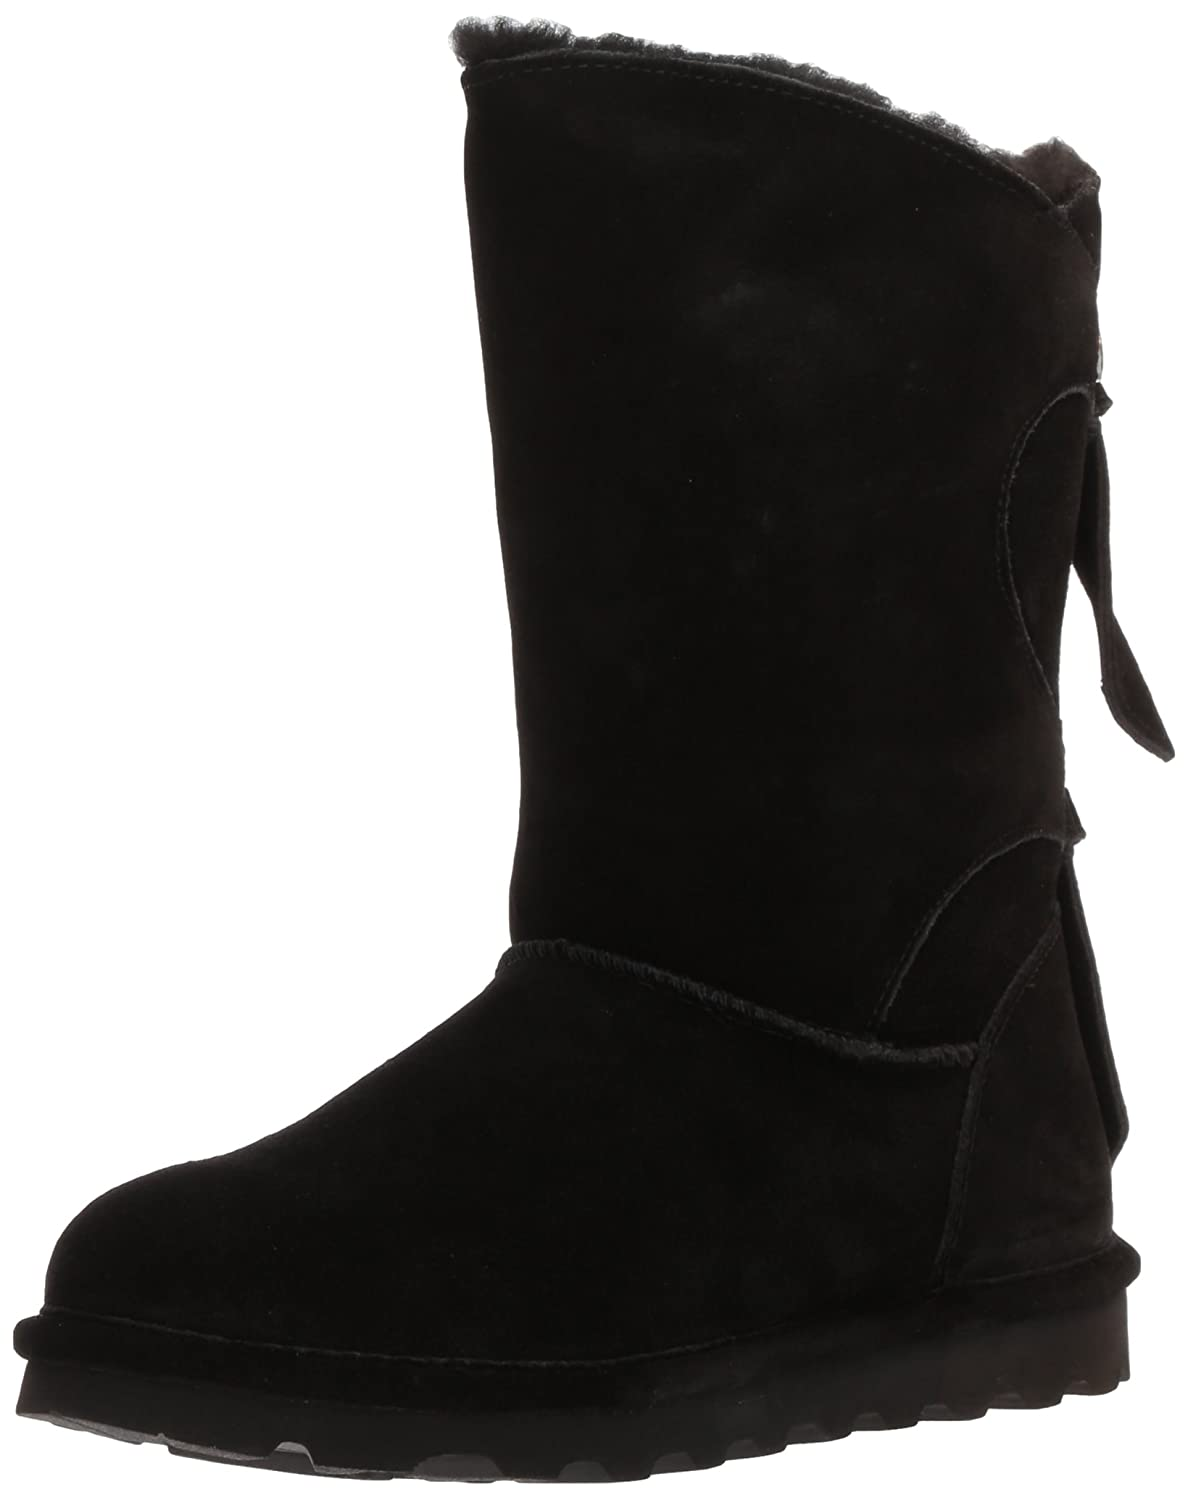 BEARPAW Women's Willow Boots, Suede, Rubber, Wool B06XYK2DMT 10 B(M) US|Black Ii